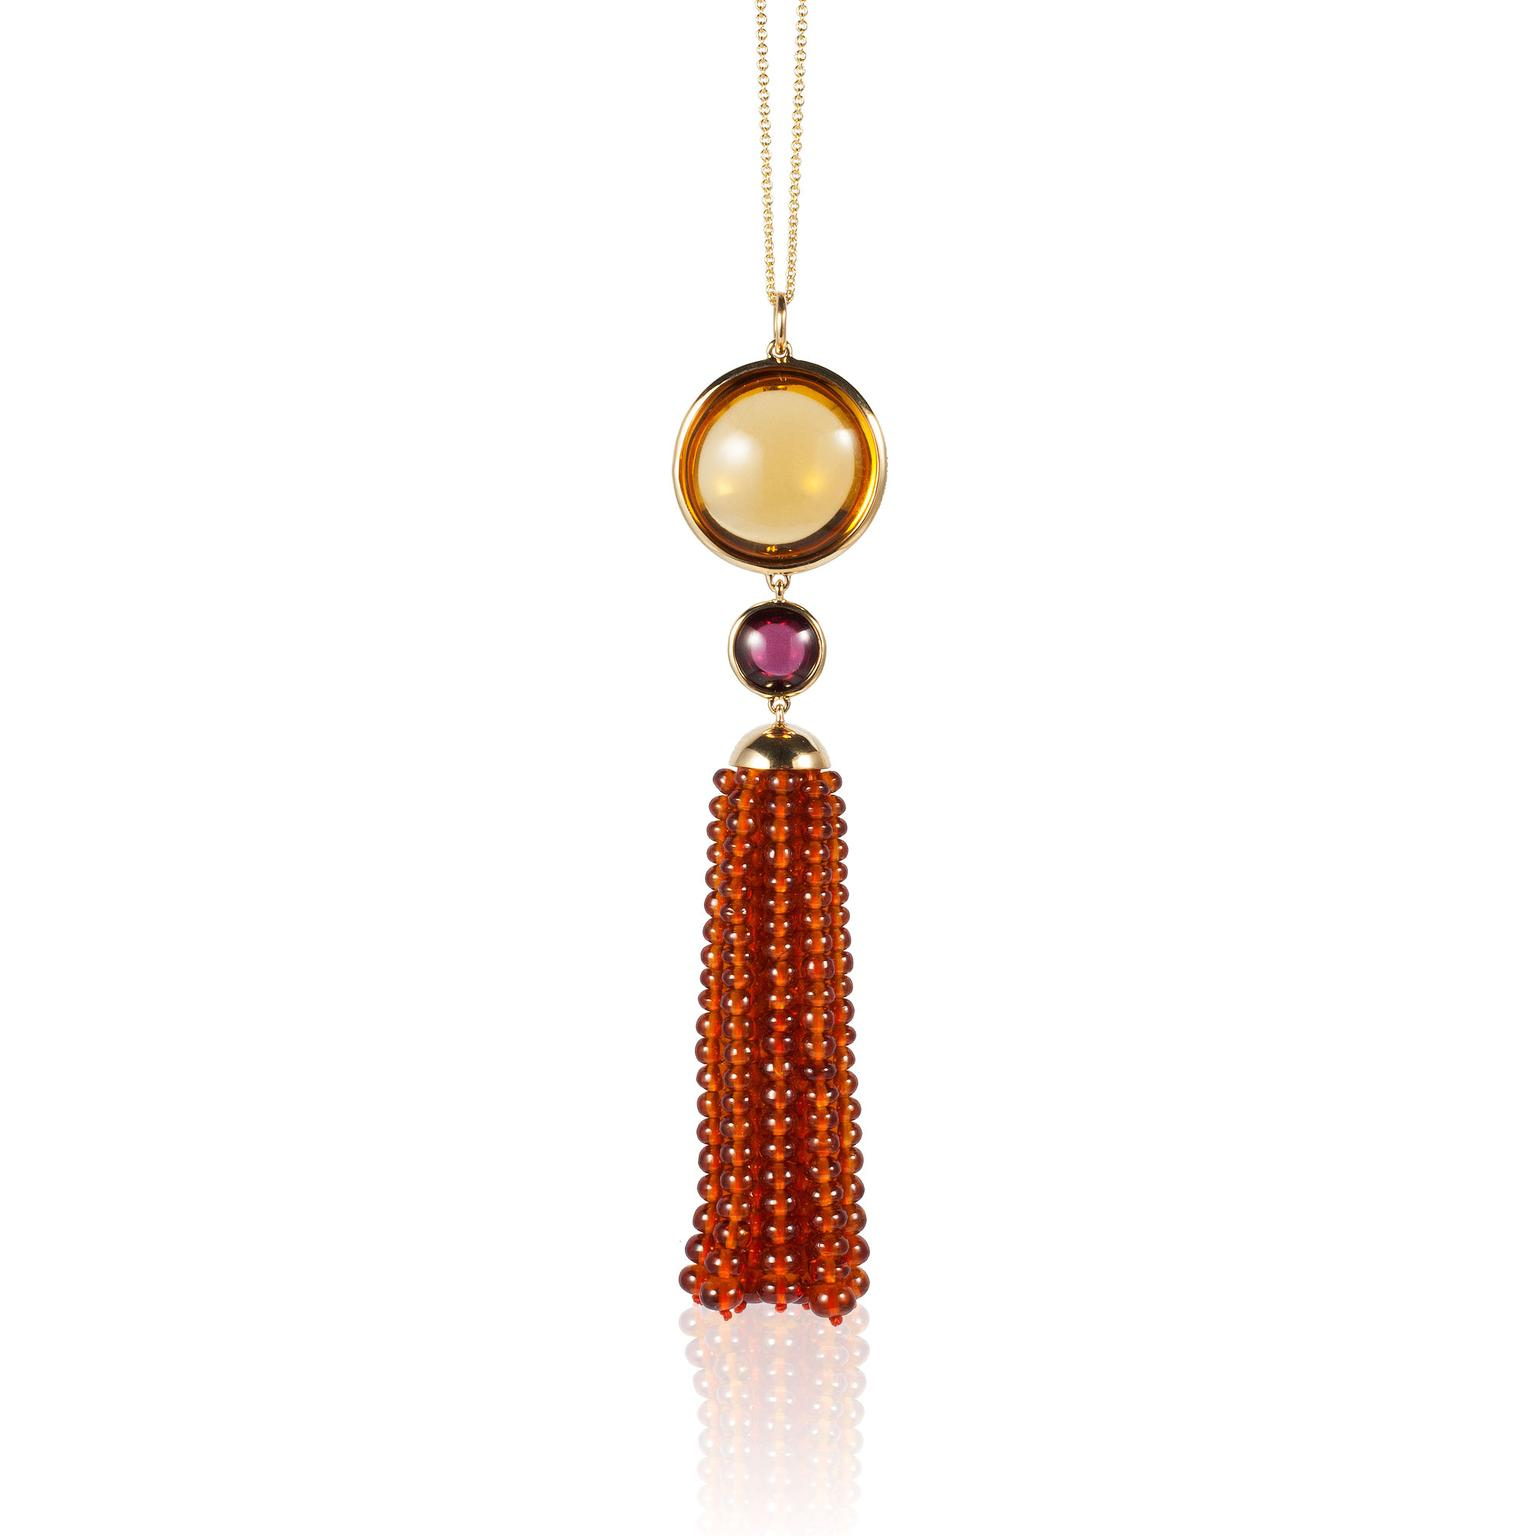 Goshwara Naughty Citrine Drop & Garnet Cabochon Earrings 1uS6YTvi5